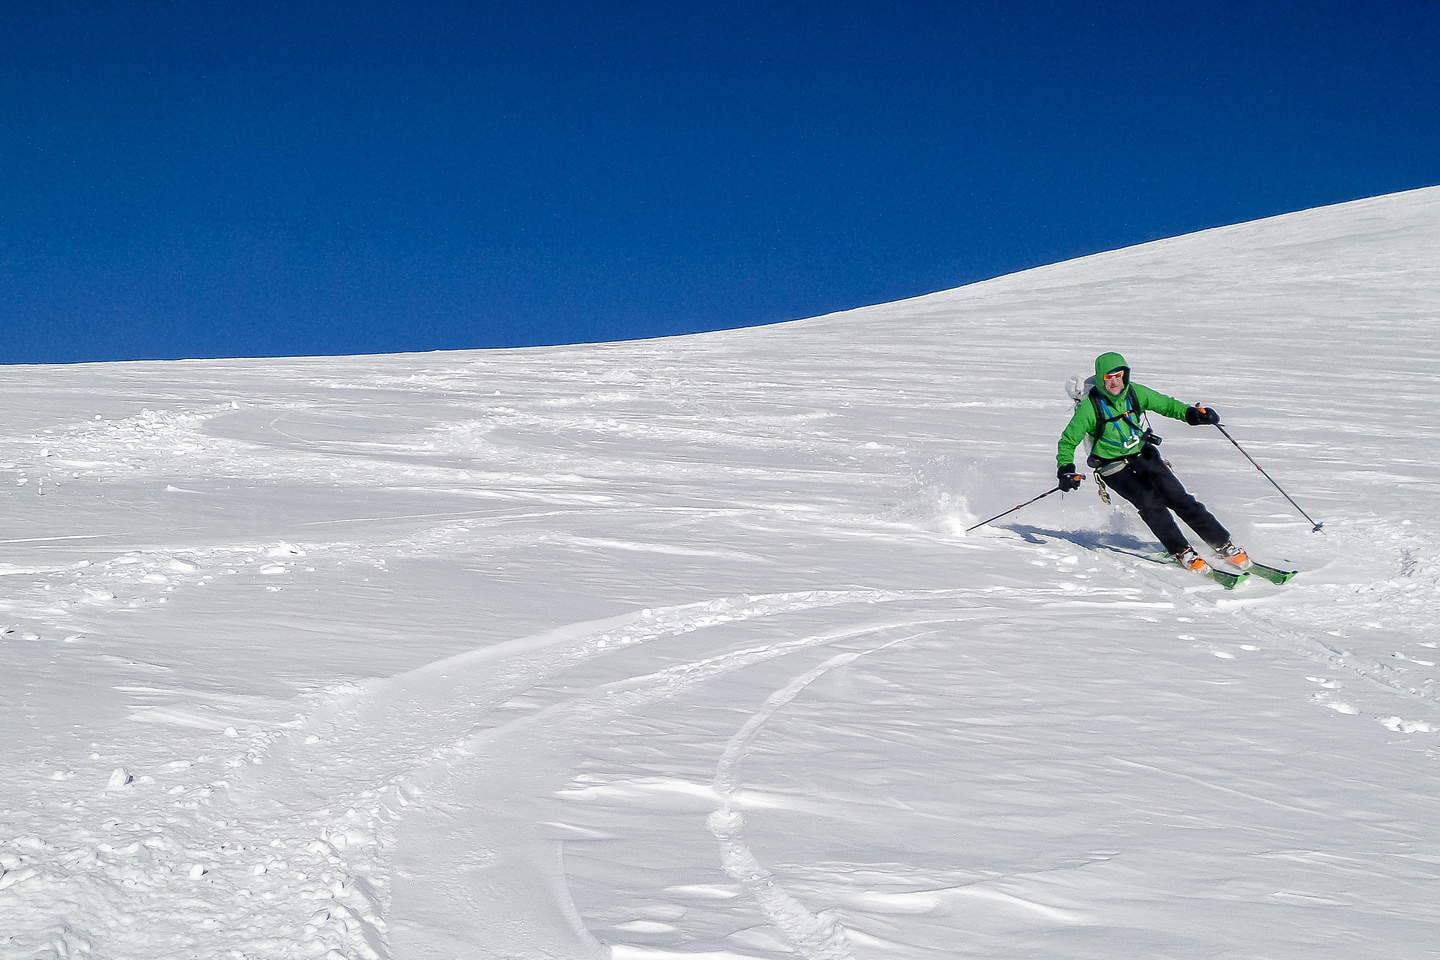 Vern skis down - what a blast!! Photo by Steven Song.